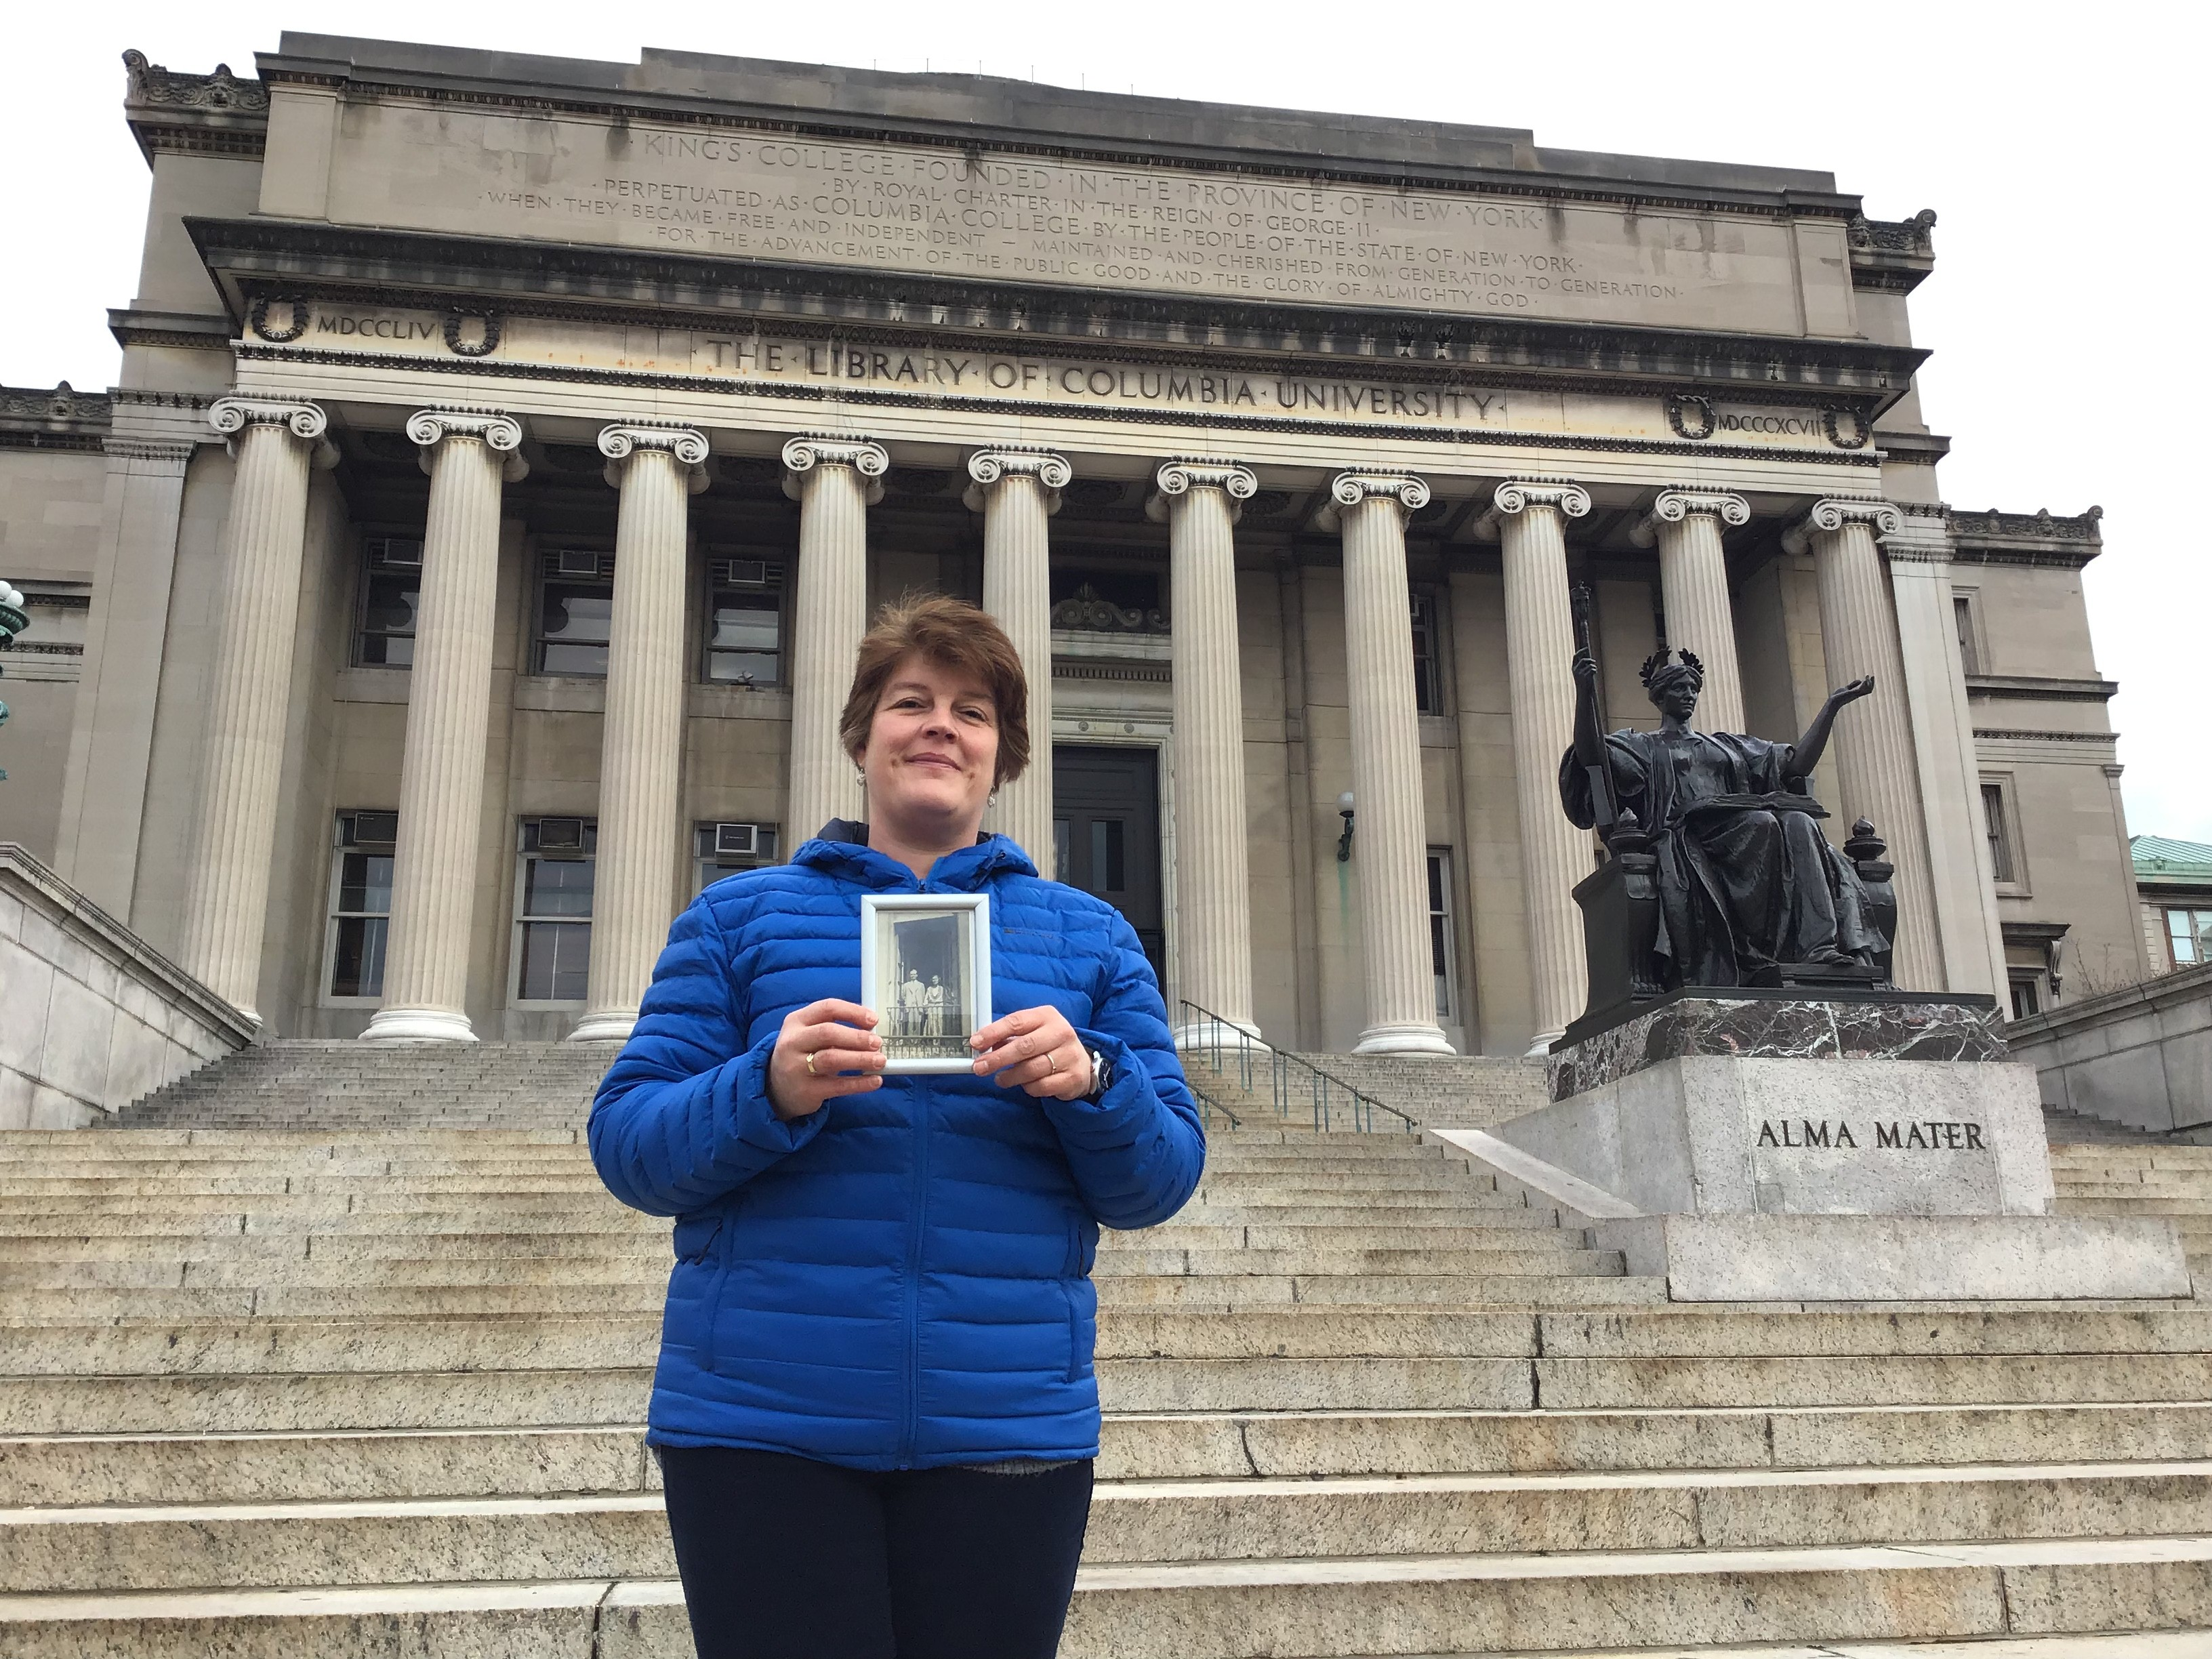 Alice Lewthwaite on the steps of Low Memorial Library Columbia University NYC with a picture of Harry & Florence Edmond - this is where Harry met the Chinese student in 1909.